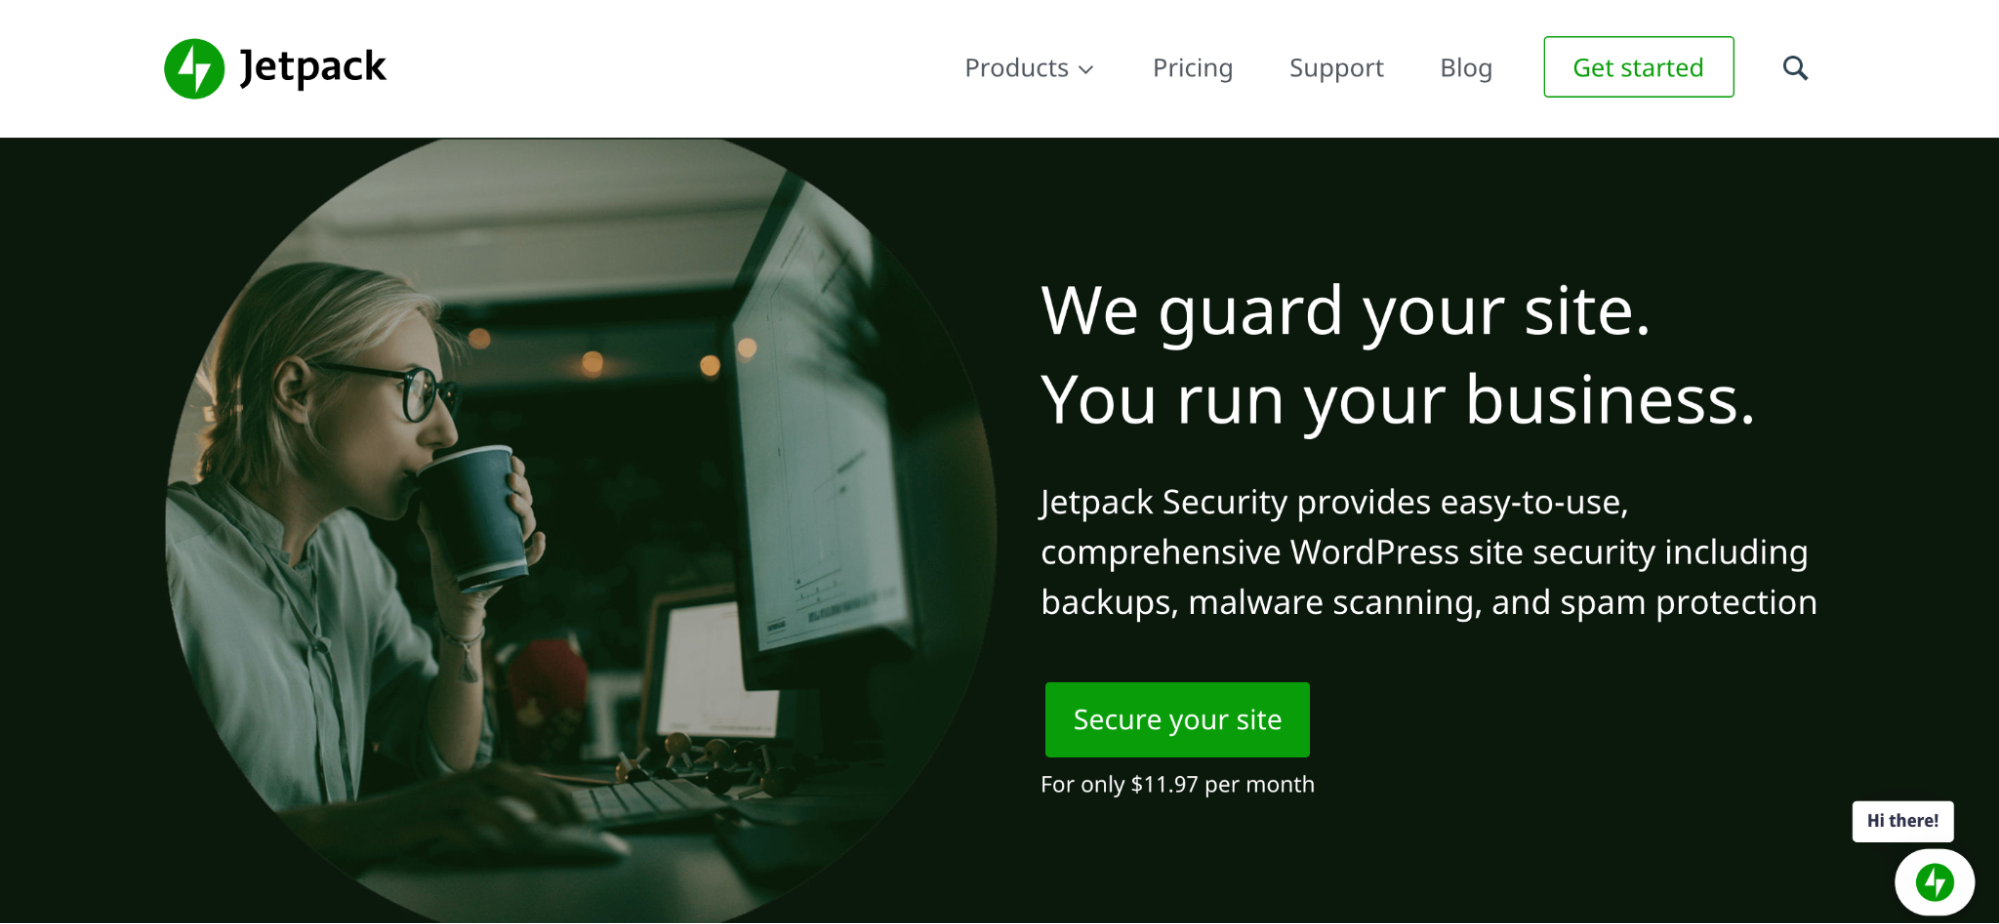 Jetpack Security landing page with details about pricing and features